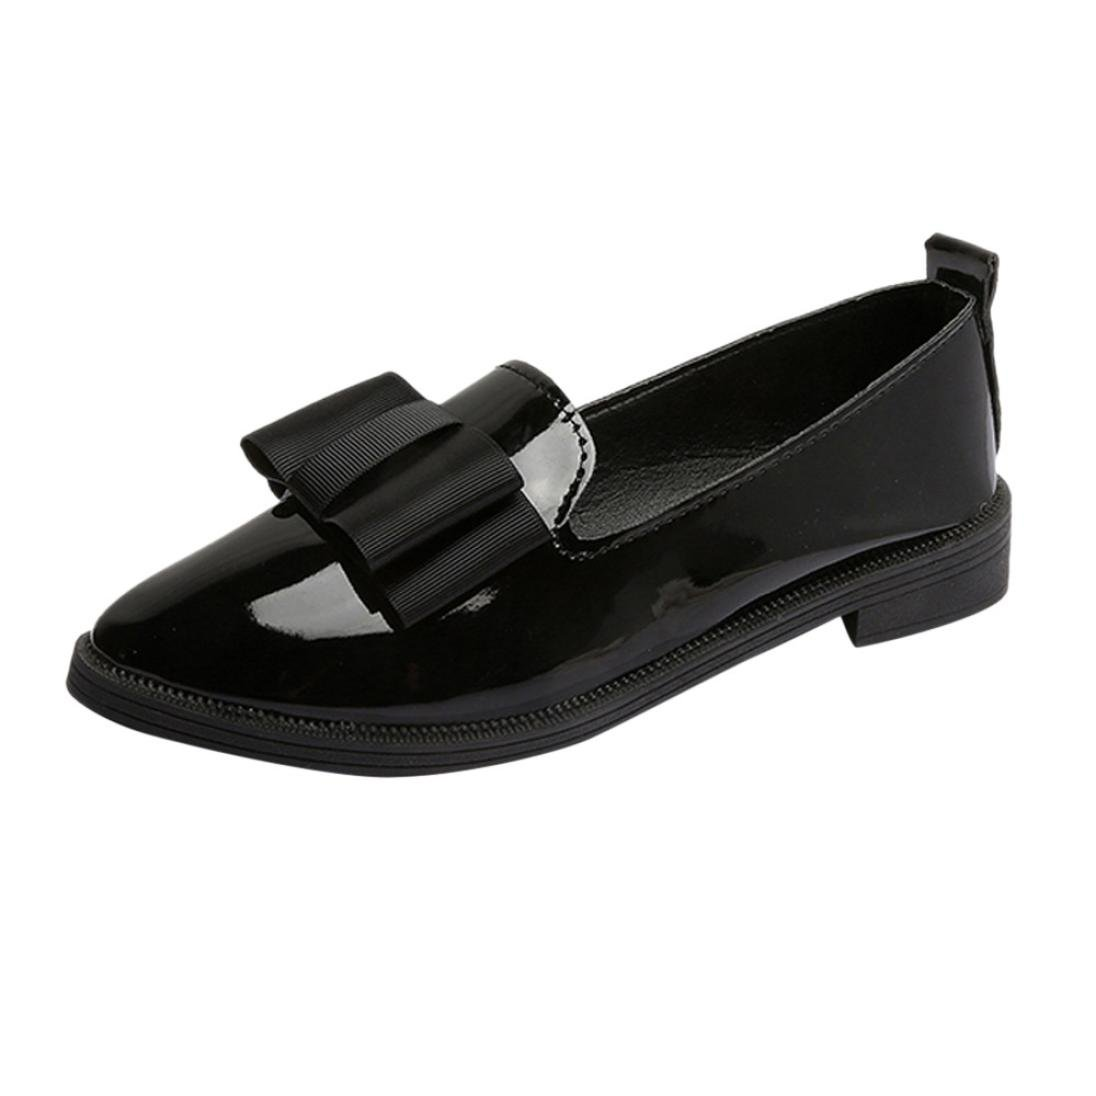 WOCACHI Women Shoes Casual Classic Women Flat Oxford Shoes with Pointed Toe Butterfly-Knot B07D6N5WWX 5 M US|Black